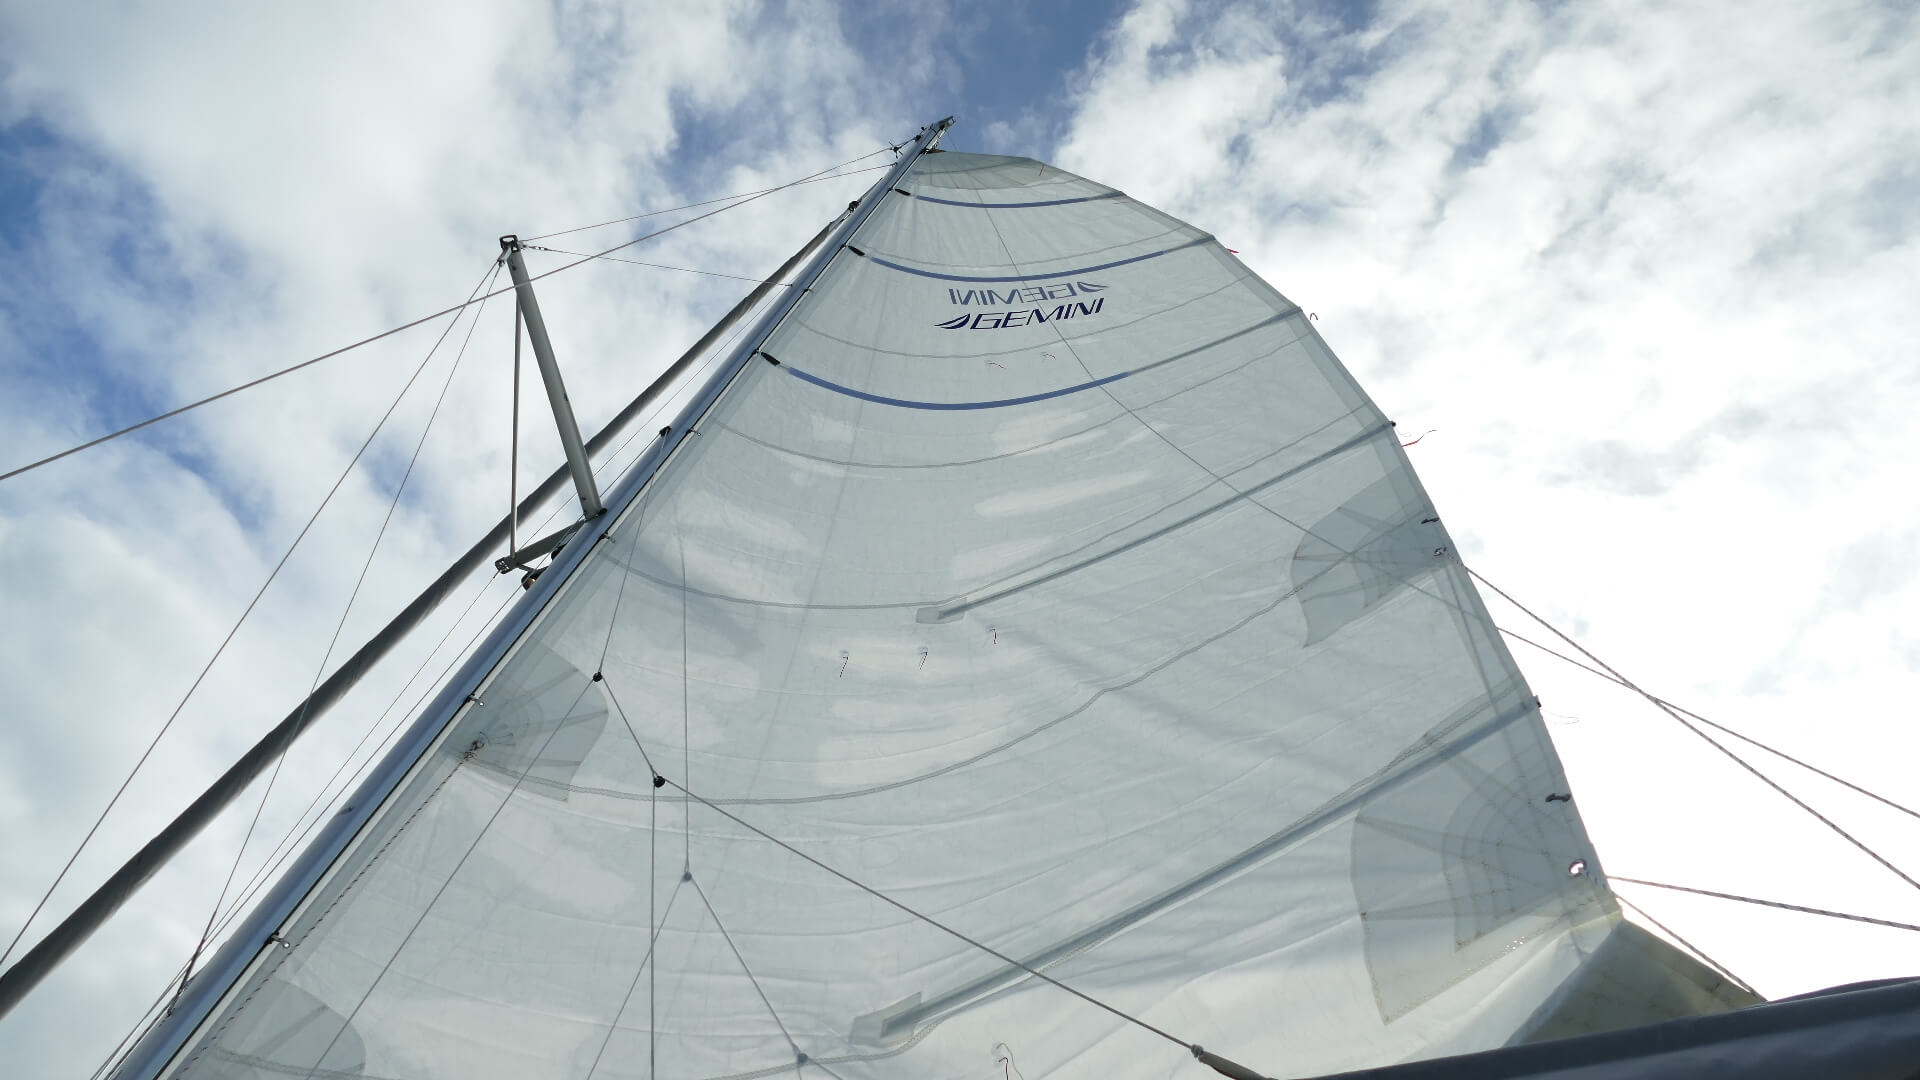 Used Sail Catamarans for Sale 2013 Legacy 35 Sails & Rigging